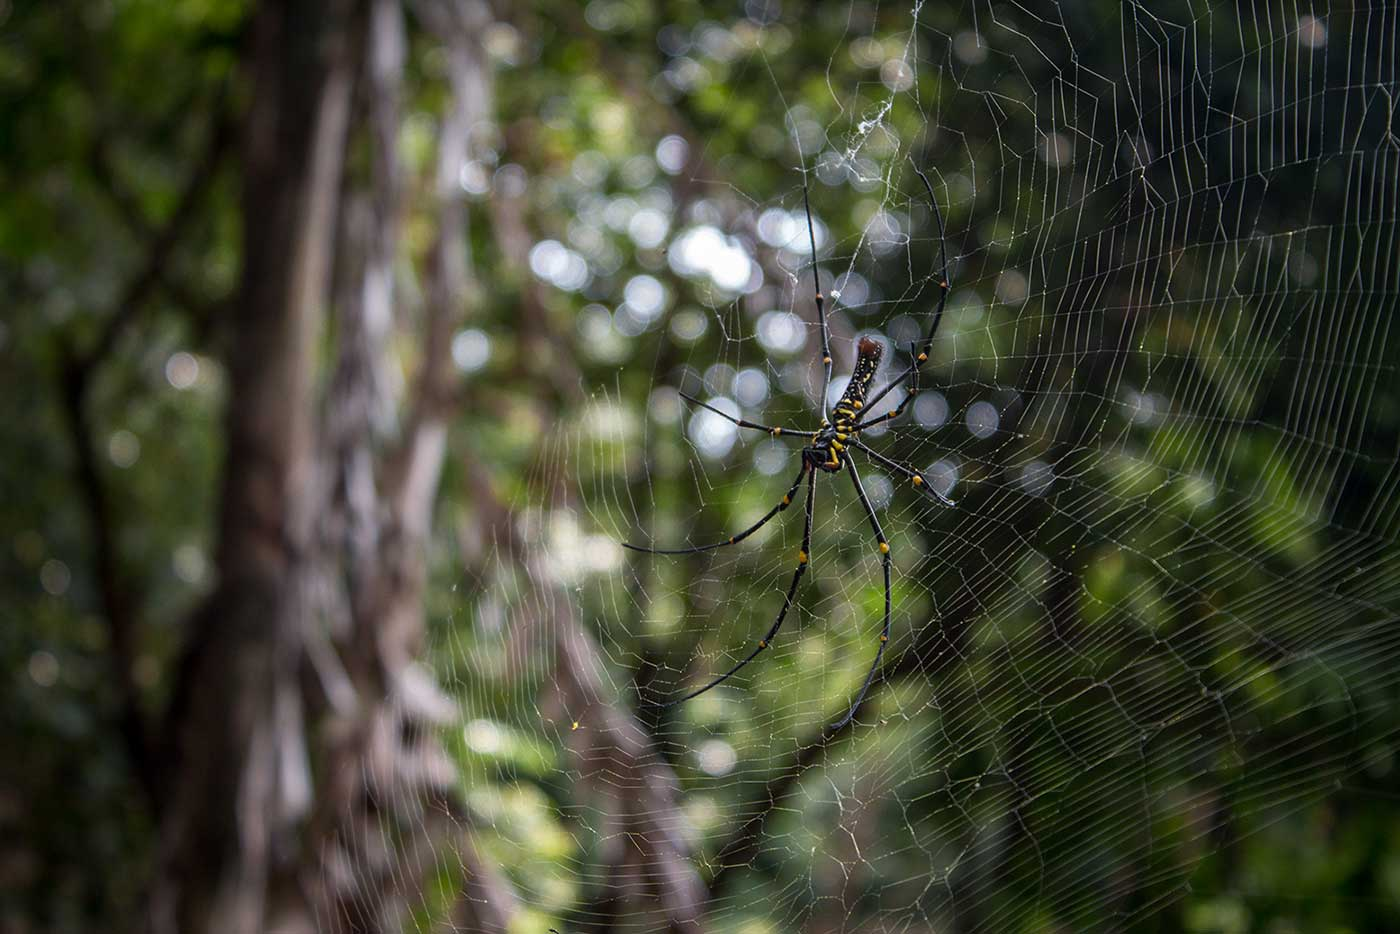 A giant golden orb weaver spider builds its web across the path. Penang Island, Malaysia.